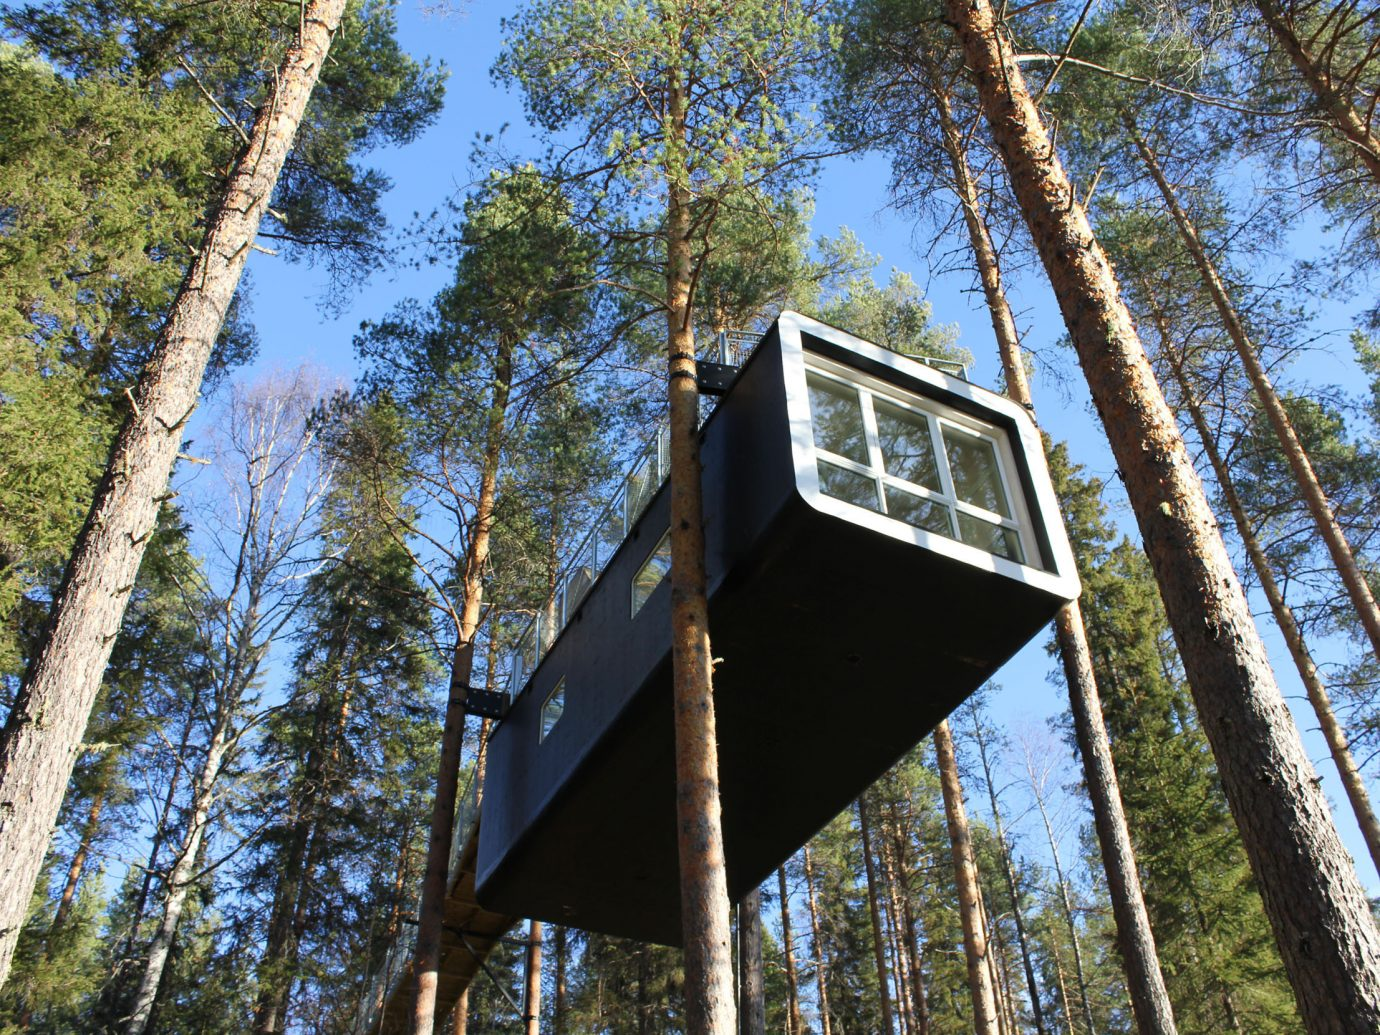 Hotels tree outdoor building house rolling stock woody plant Forest wooded